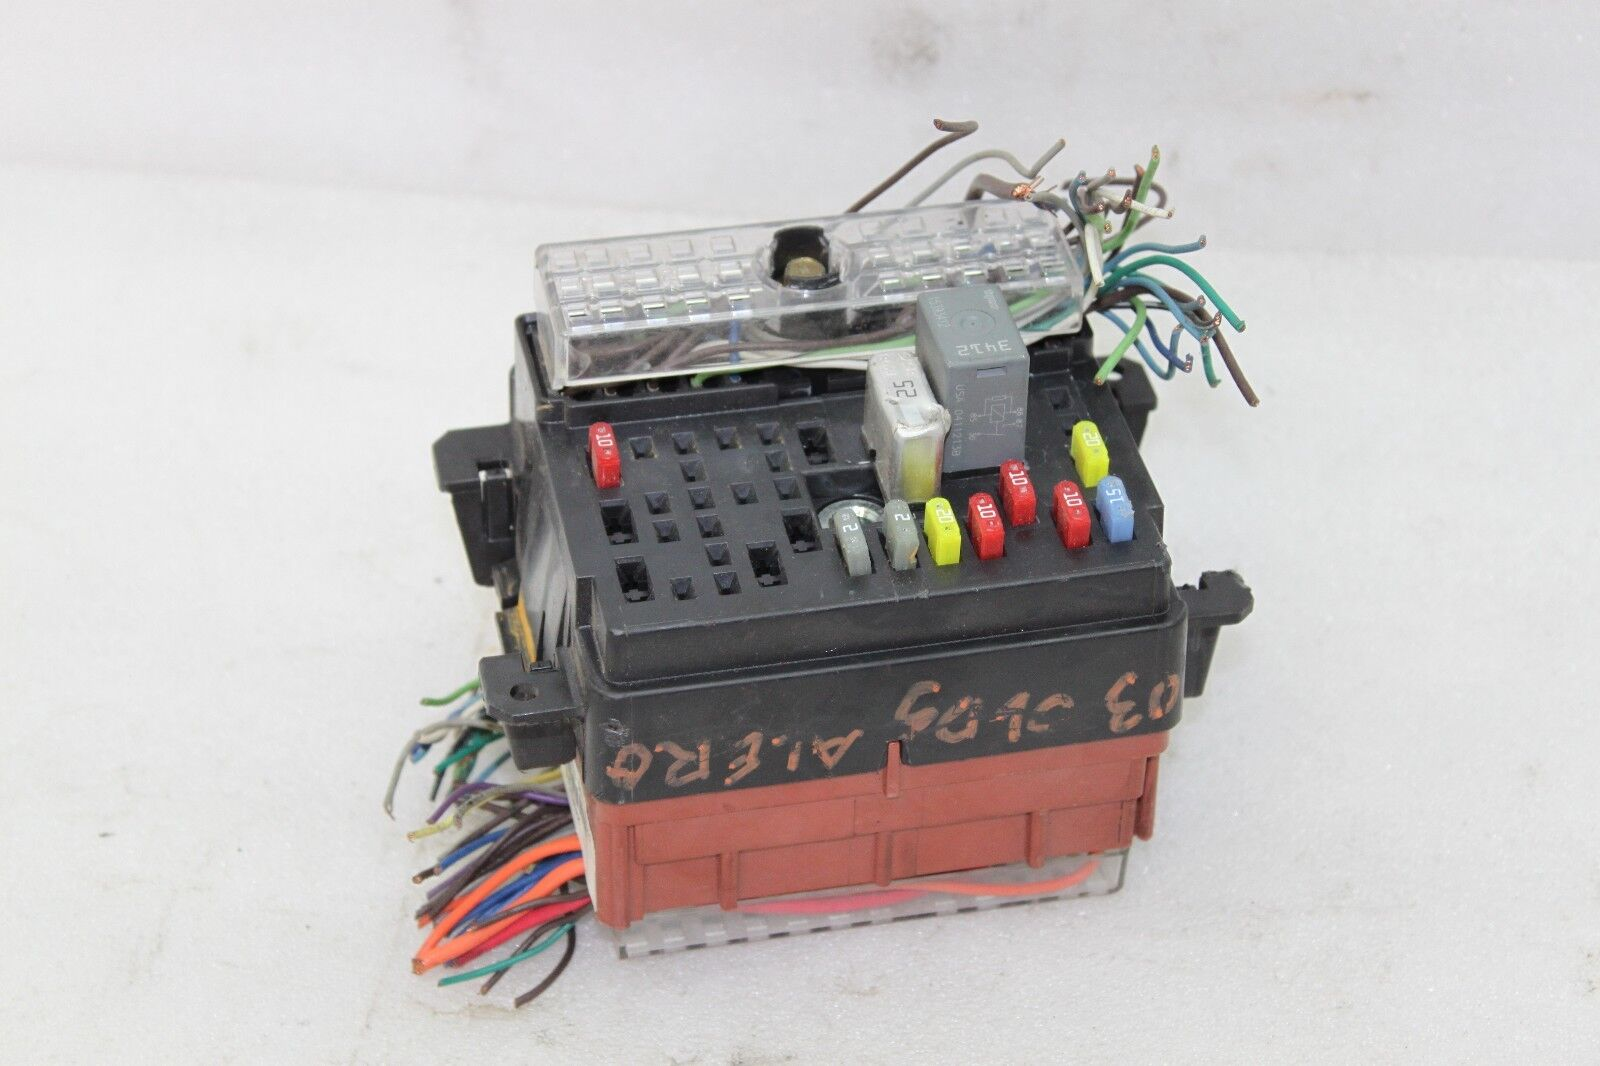 Used Oldsmobile Computers And Cruise Control Parts For Sale Page 76 Intrigue Fuse Box 28697019 2003 Alero Under Dash Rh Relay Fusebox C 1928